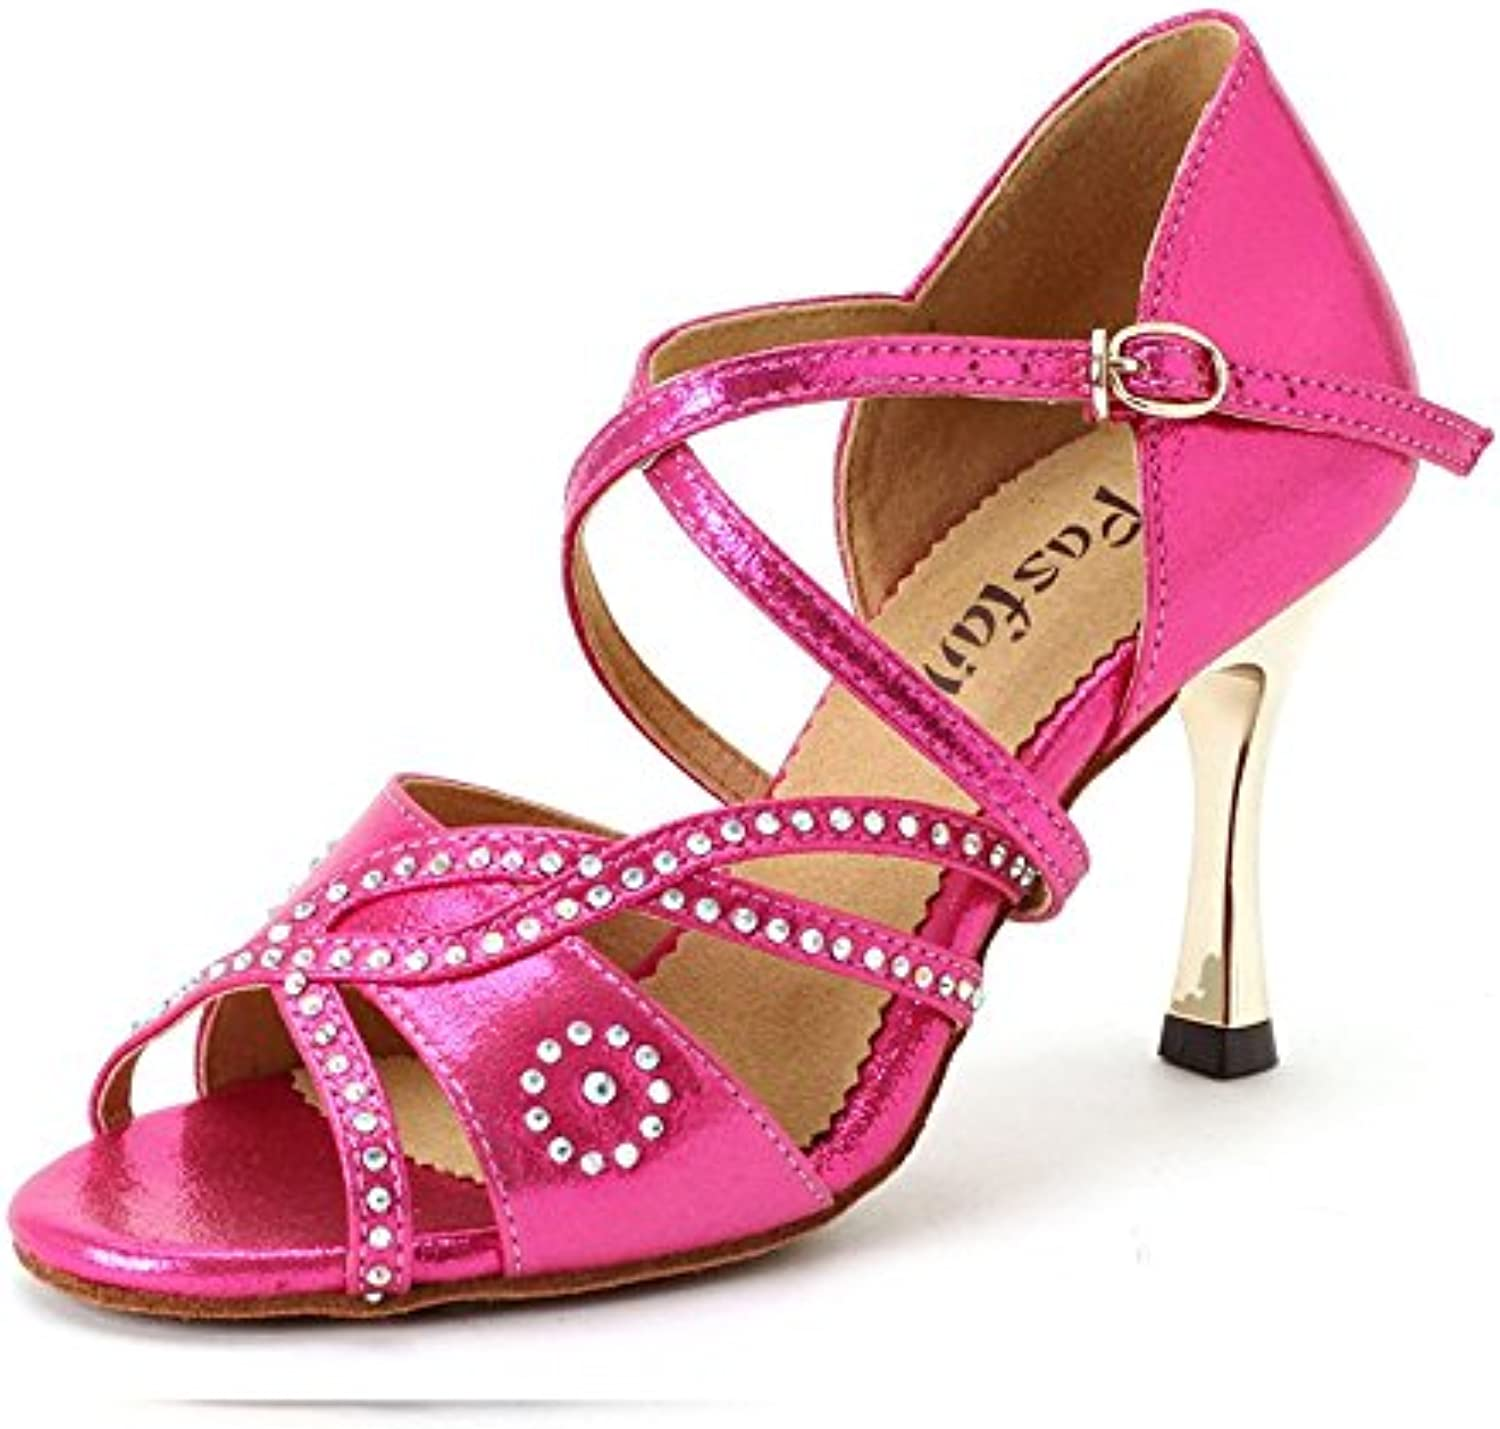 Ruanyi Professional Latin Dancing shoes, bluee and Pink Latin Dance shoes 8.5cm Heel Salsa Dancing shoes for Women